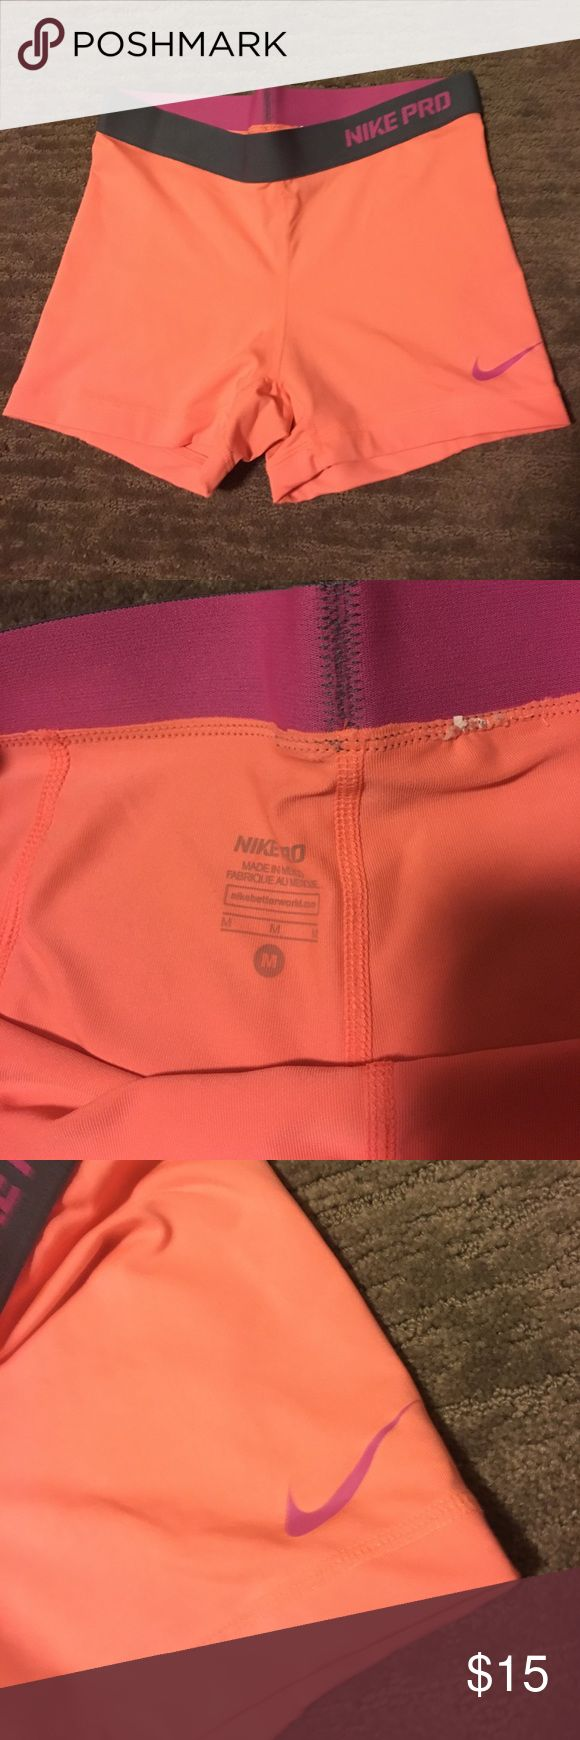 Nike Pro Spandex Peach colored Nike Pro Spandex! Hardly worn! Accepting Offers(: Nike Other